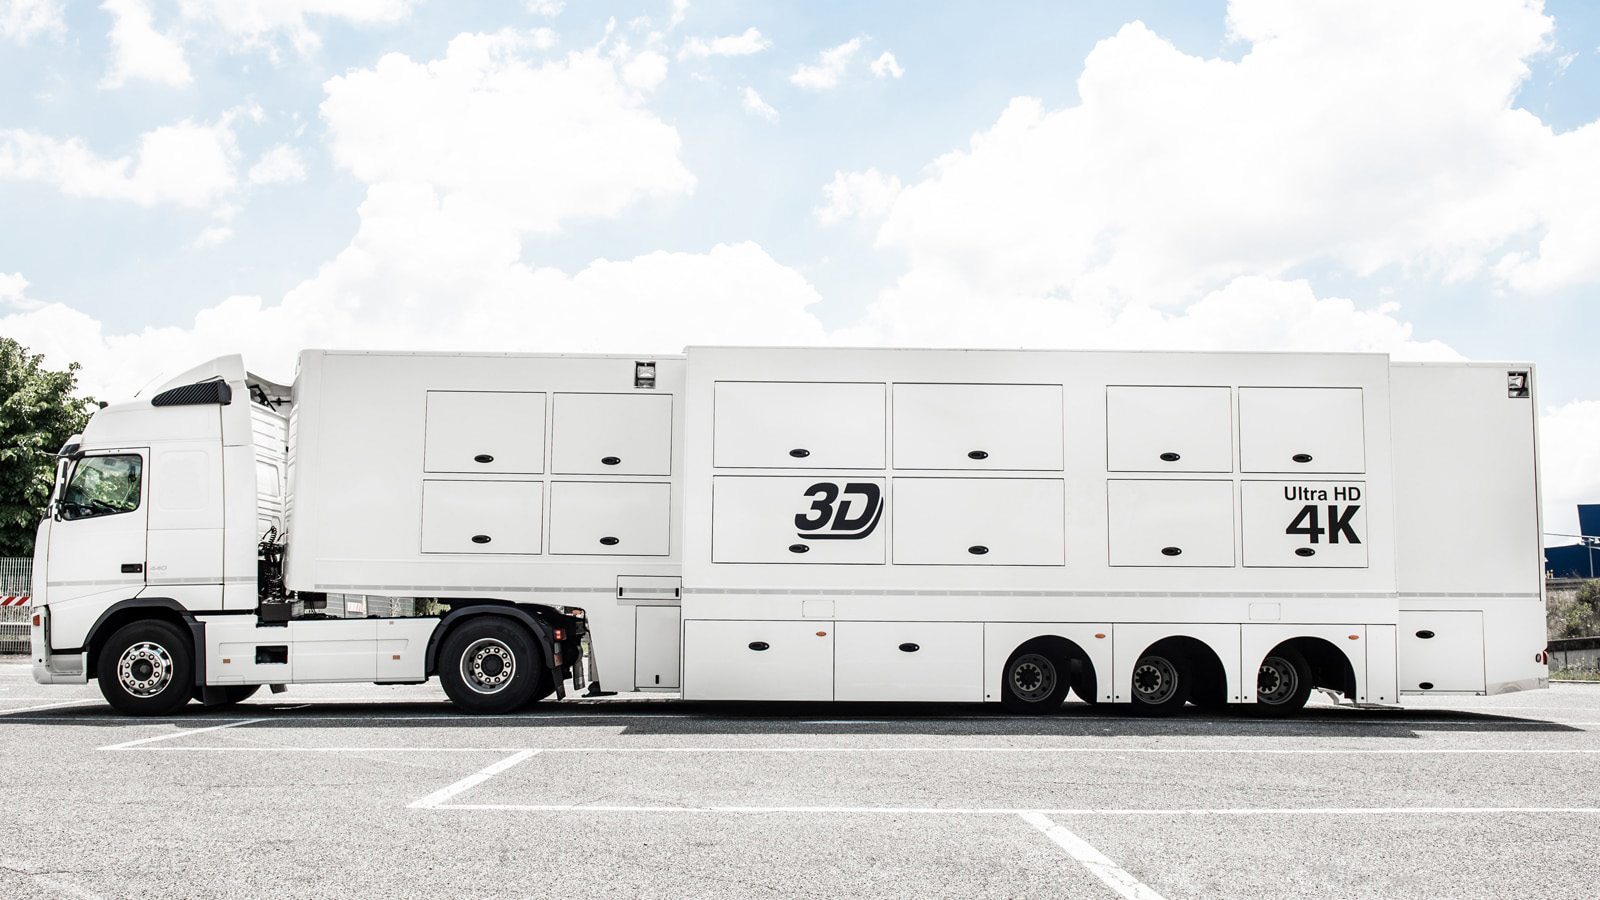 24-CAMERA DOUBLE-EXPANDABLE 4K-READY OB TRAILER - Image #1